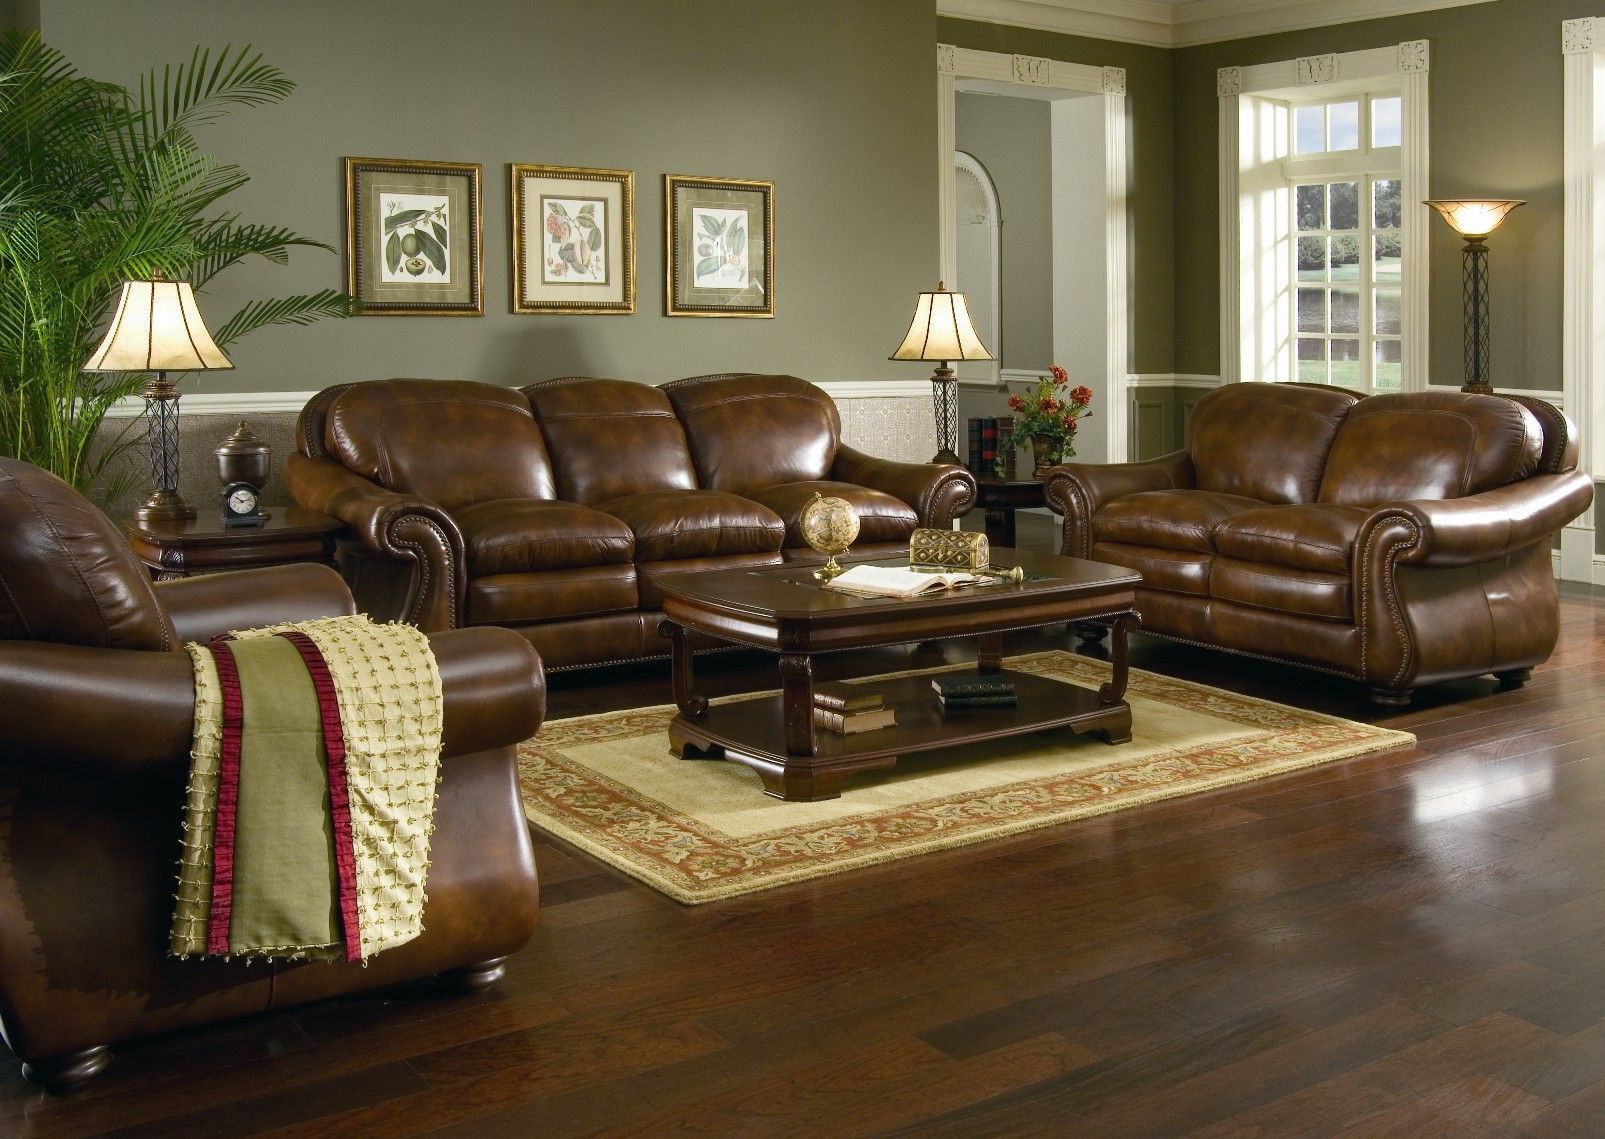 good living room colors small rooms. paint ideas living room brown furniture - colors of leather sofa \u2013 minimalist home decor design good small rooms